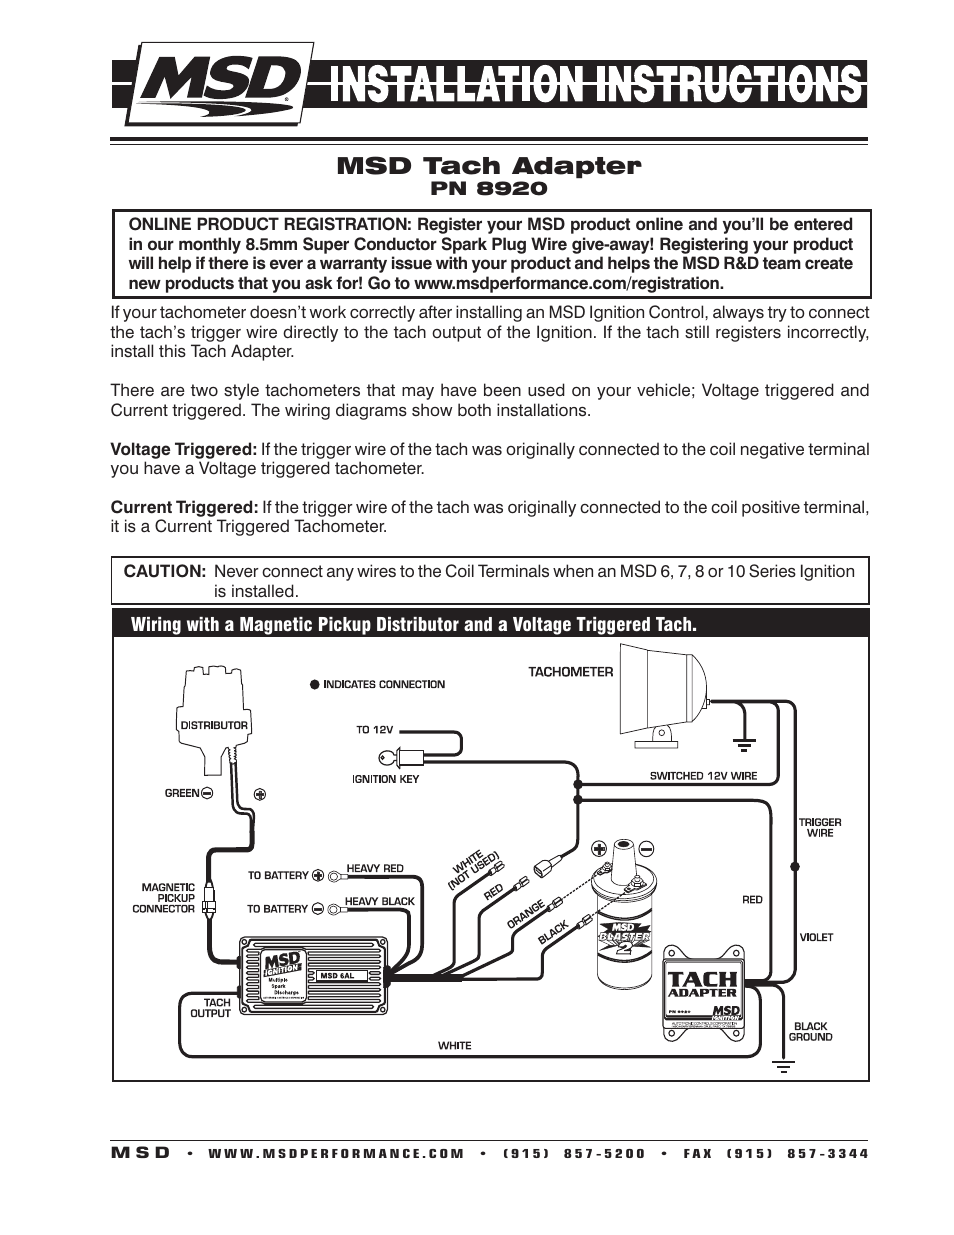 medium resolution of msd 8920 tach adapter magnetic trigger installation user manual 2 mix msd 8920 tach adapter